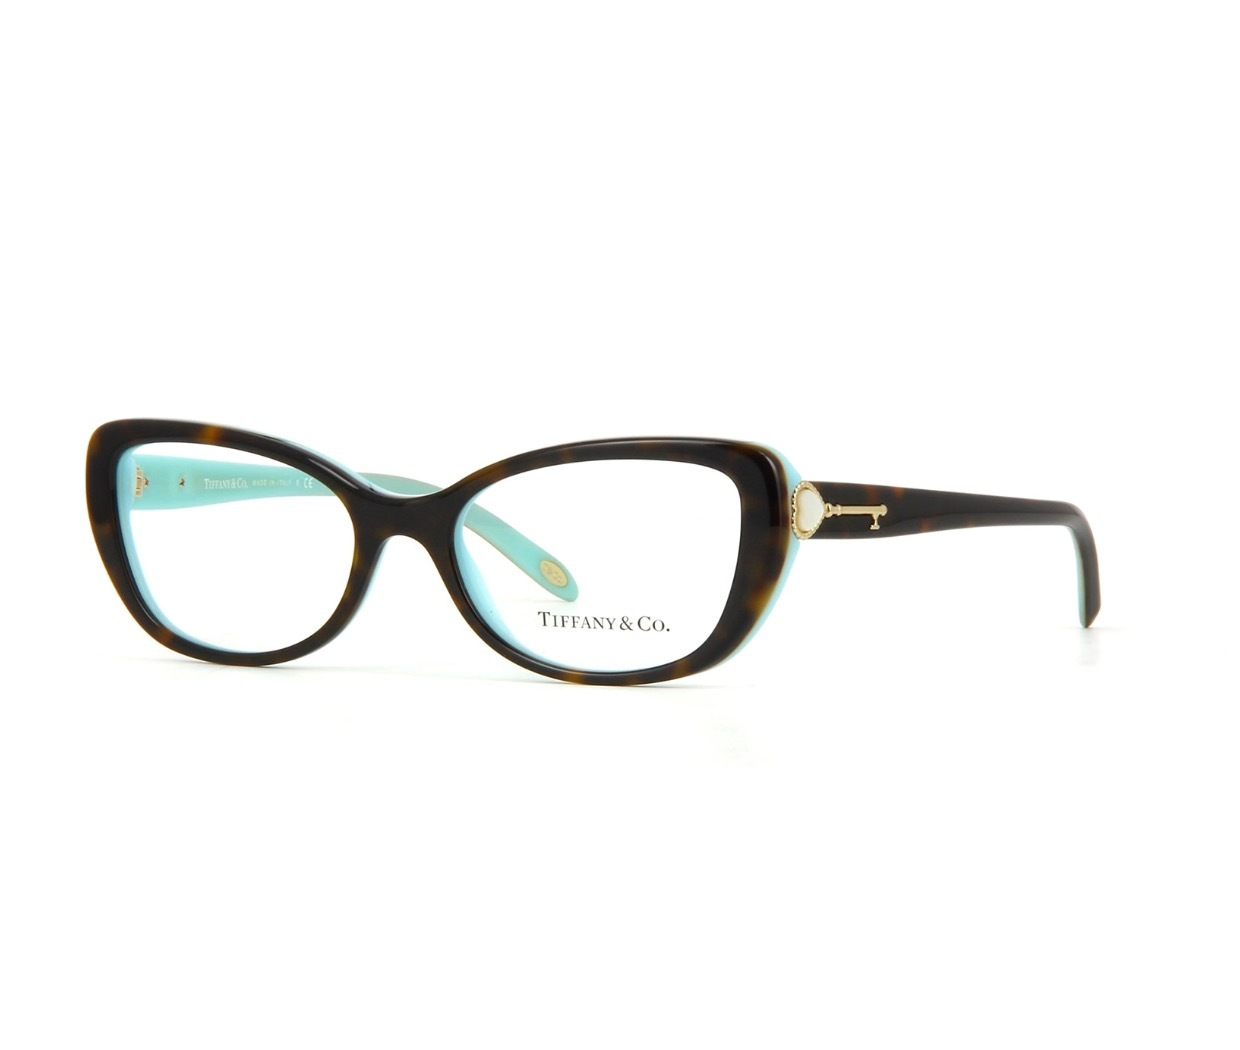 Tiffany Glasses Frames New York : New Authentic Tiffany & Co. TF2105H 8134 Tortoise Blue ...